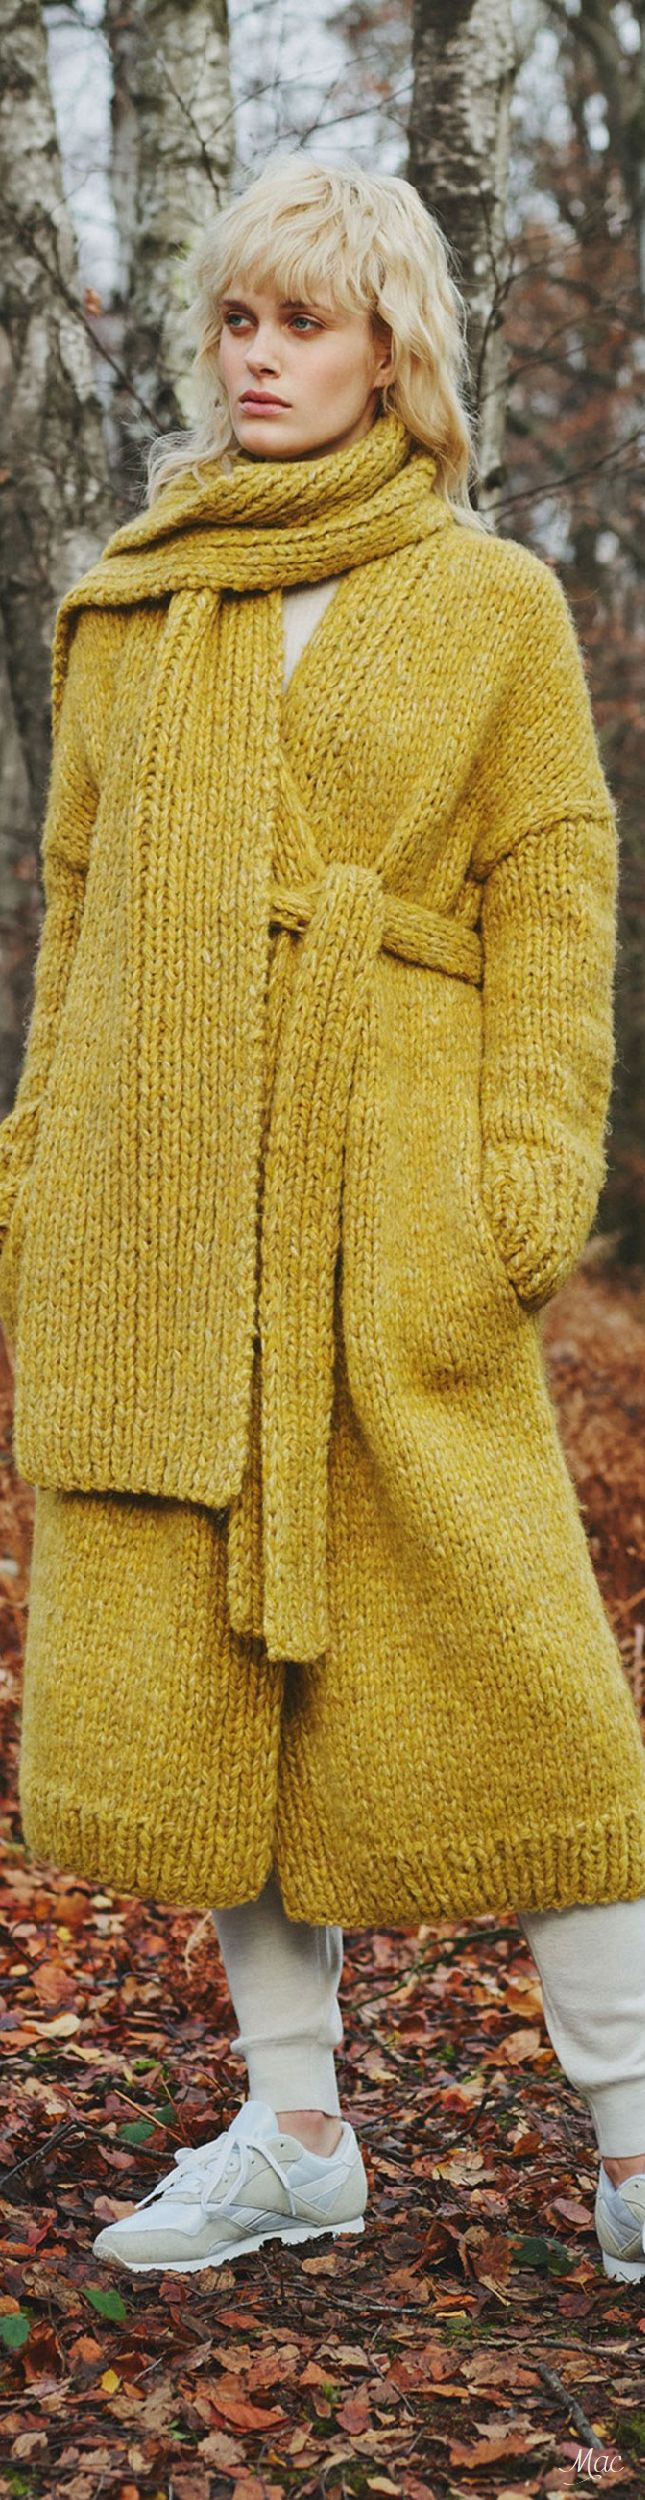 Yellow scarf and cardigan